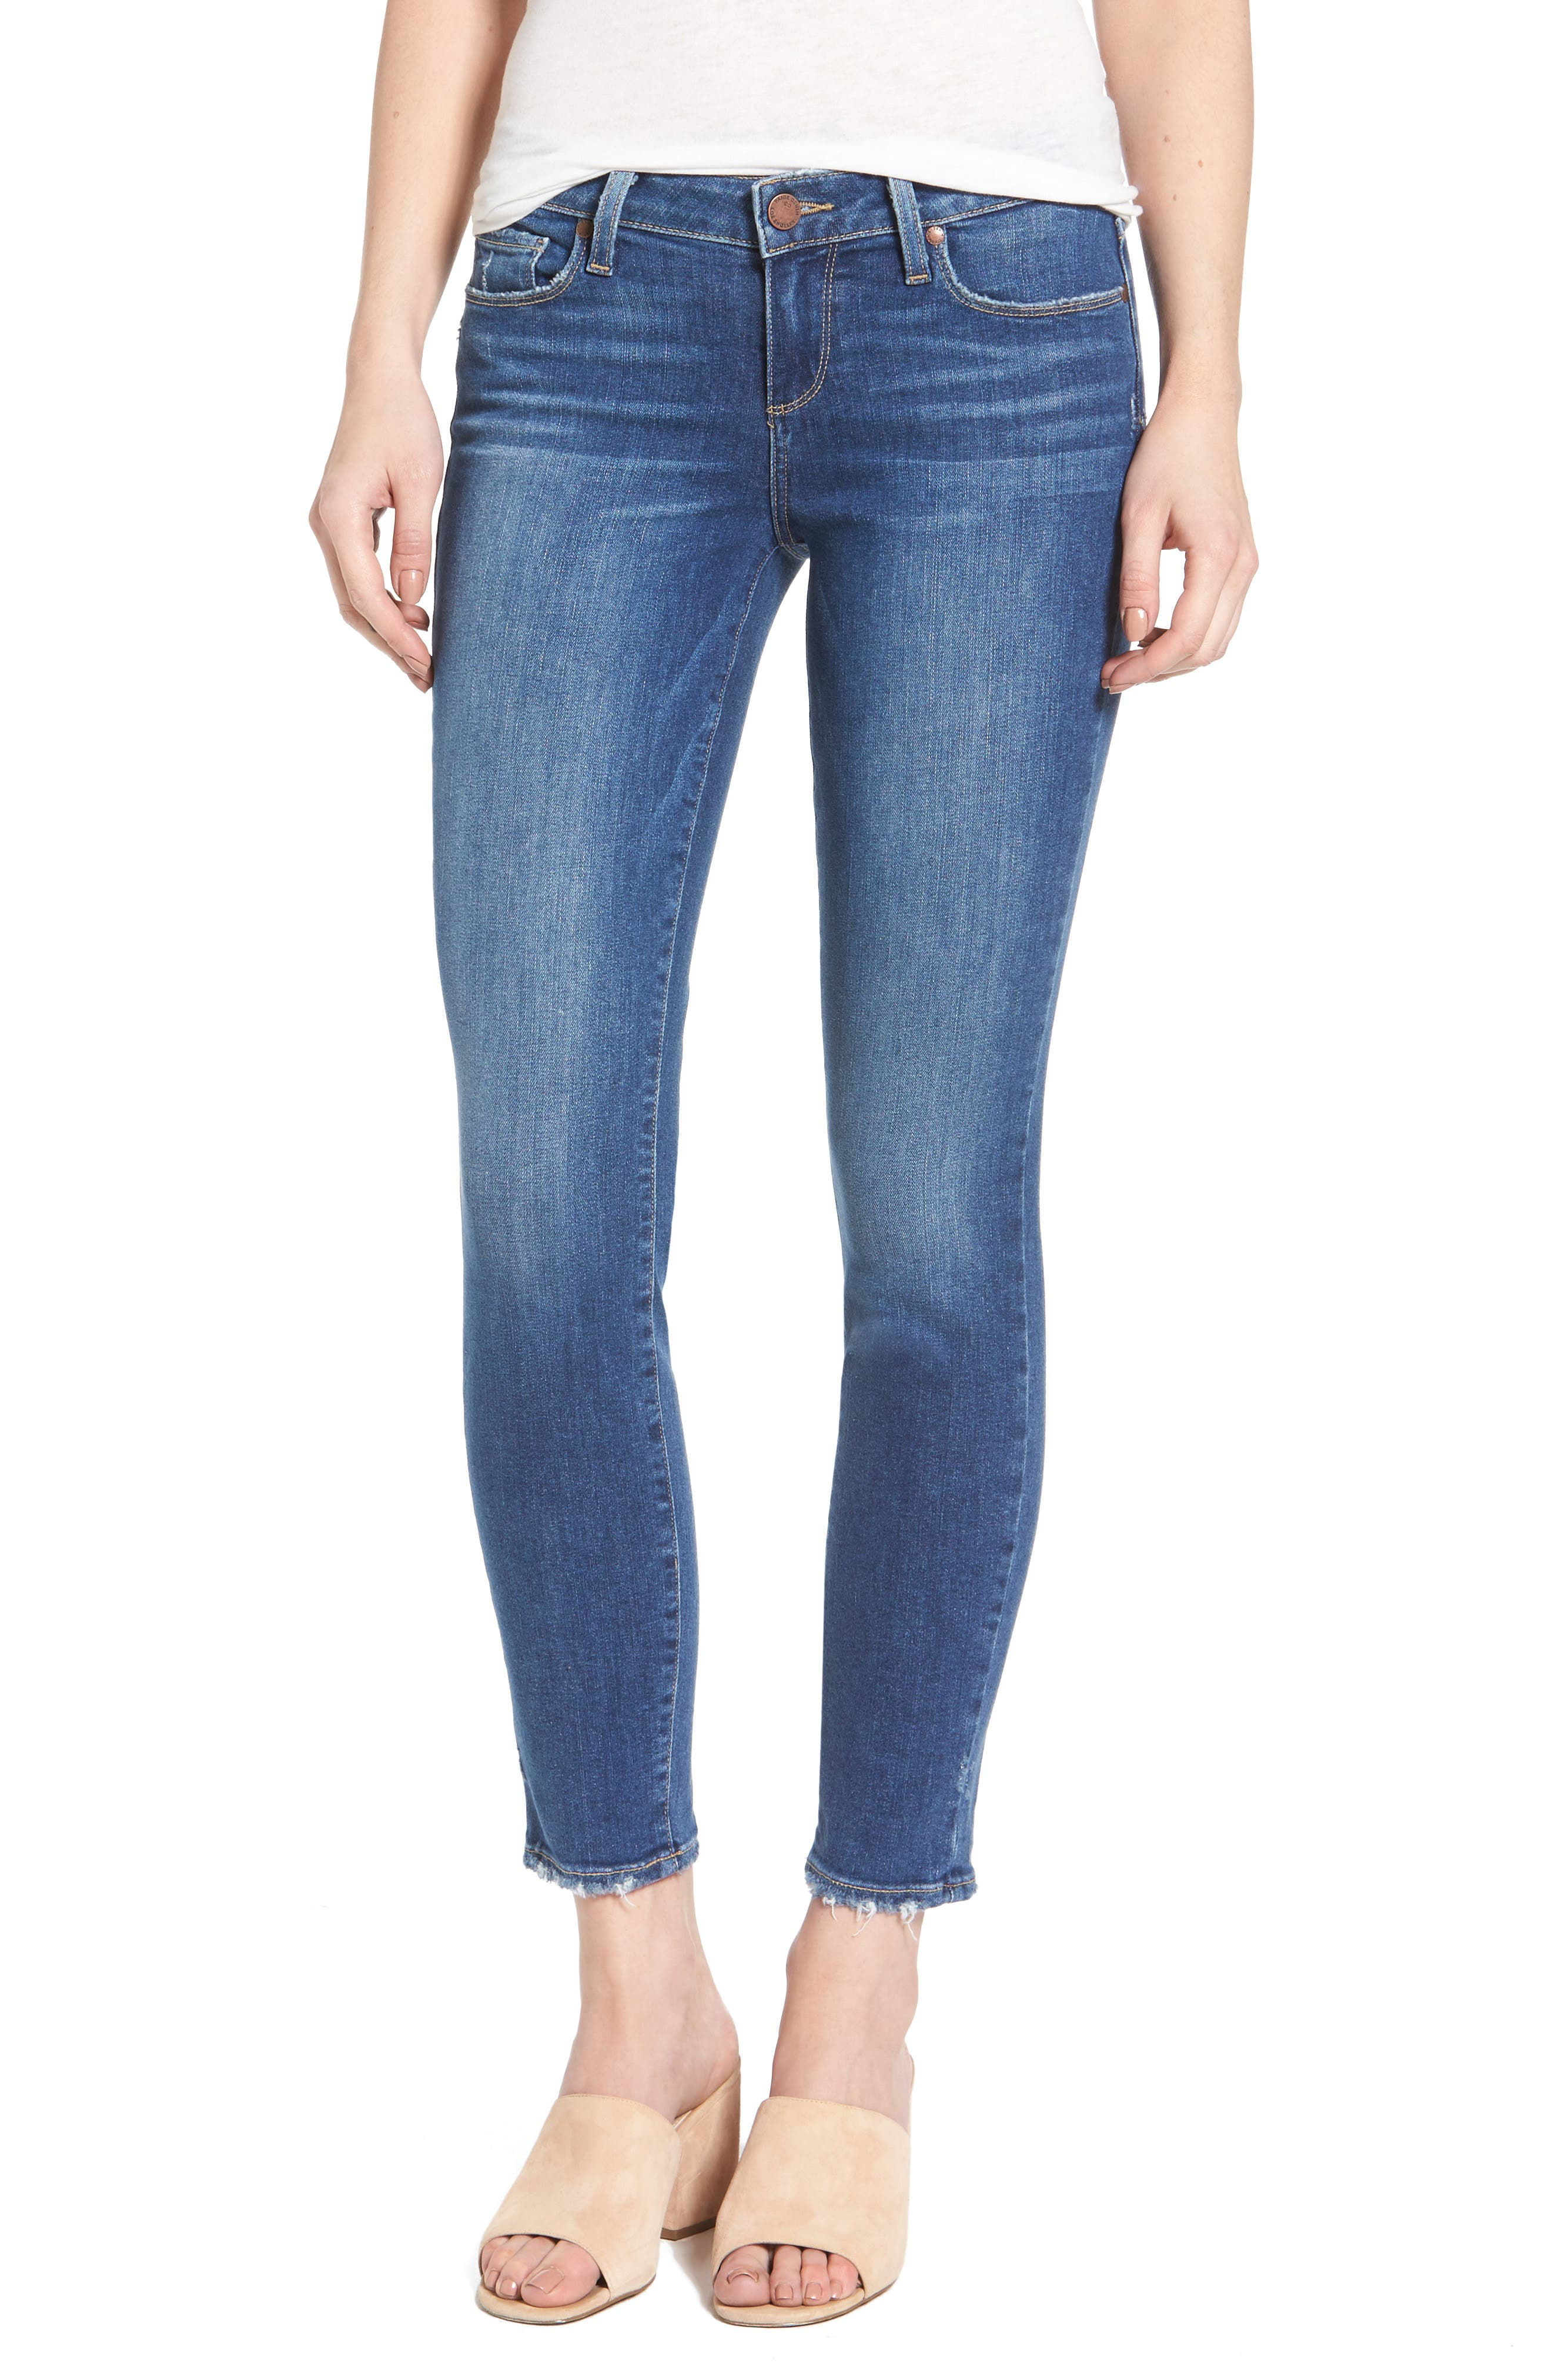 Alternate Image 1 Selected - PAIGE Verdugo Ankle Ultra Skinny Jeans (Bali)